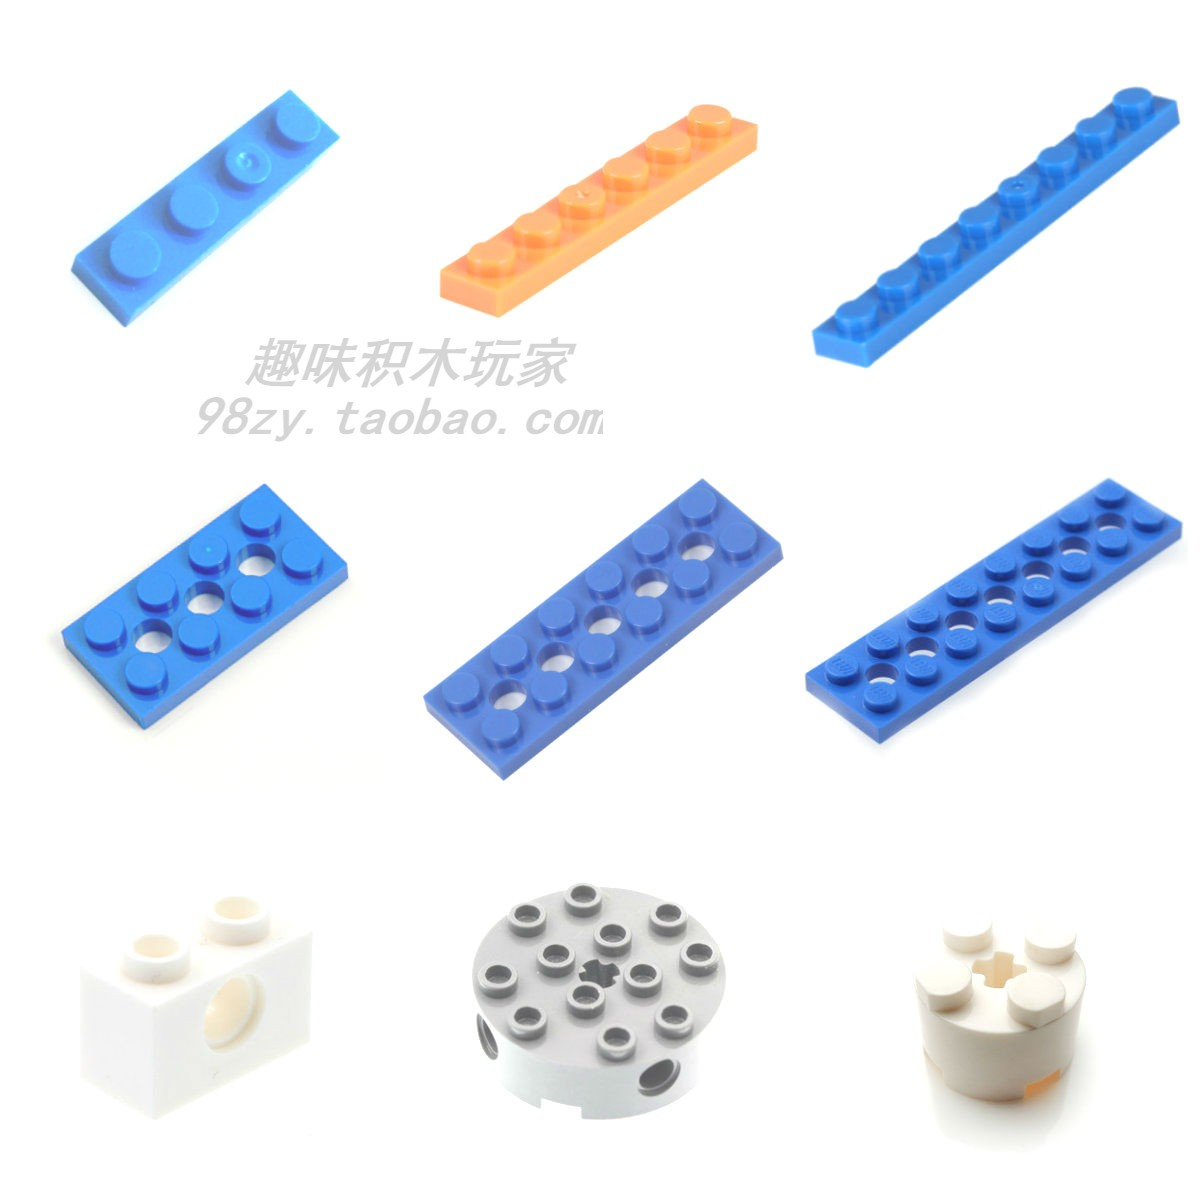 Small particle smooth skateboard technology spare parts ev3 building blocks with holes sheet with hole 9686 technology parts 4x4 thick disc